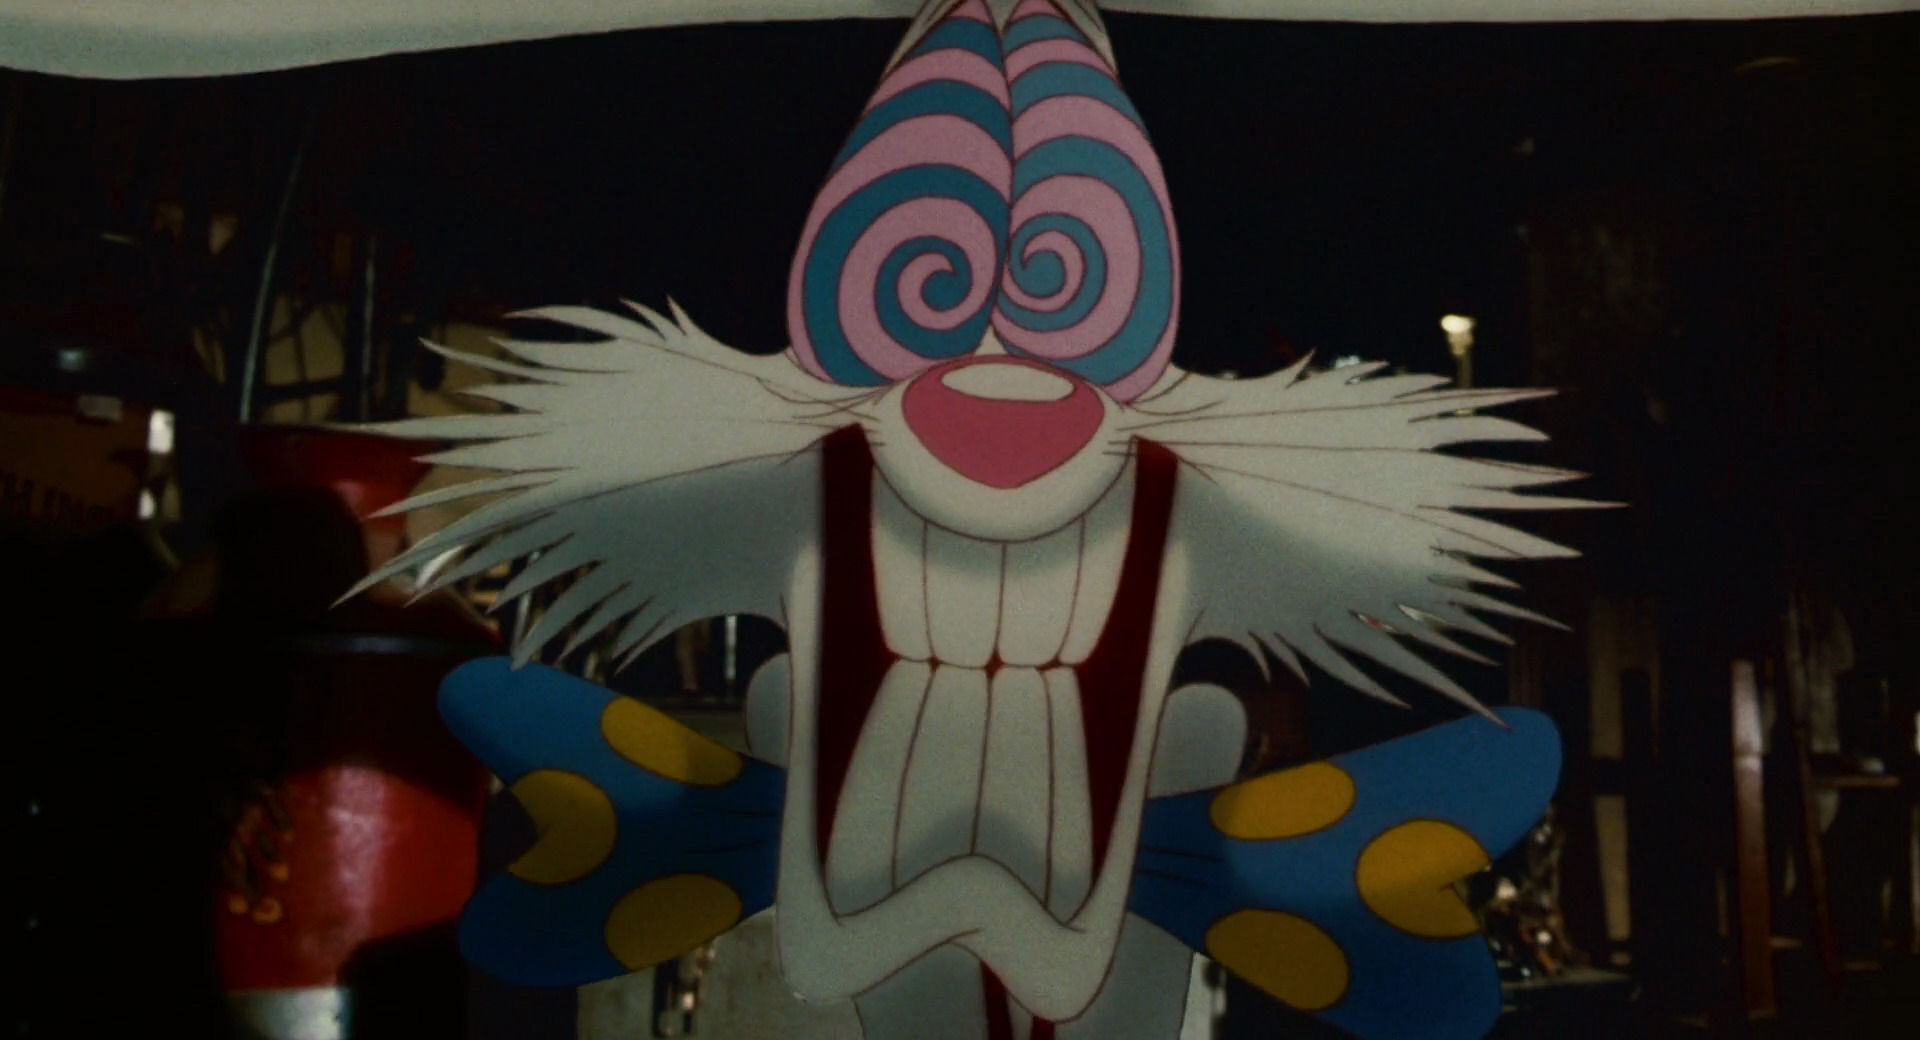 Roger Rabbit | Wiki Dominios Encantados | FANDOM powered by Wikia